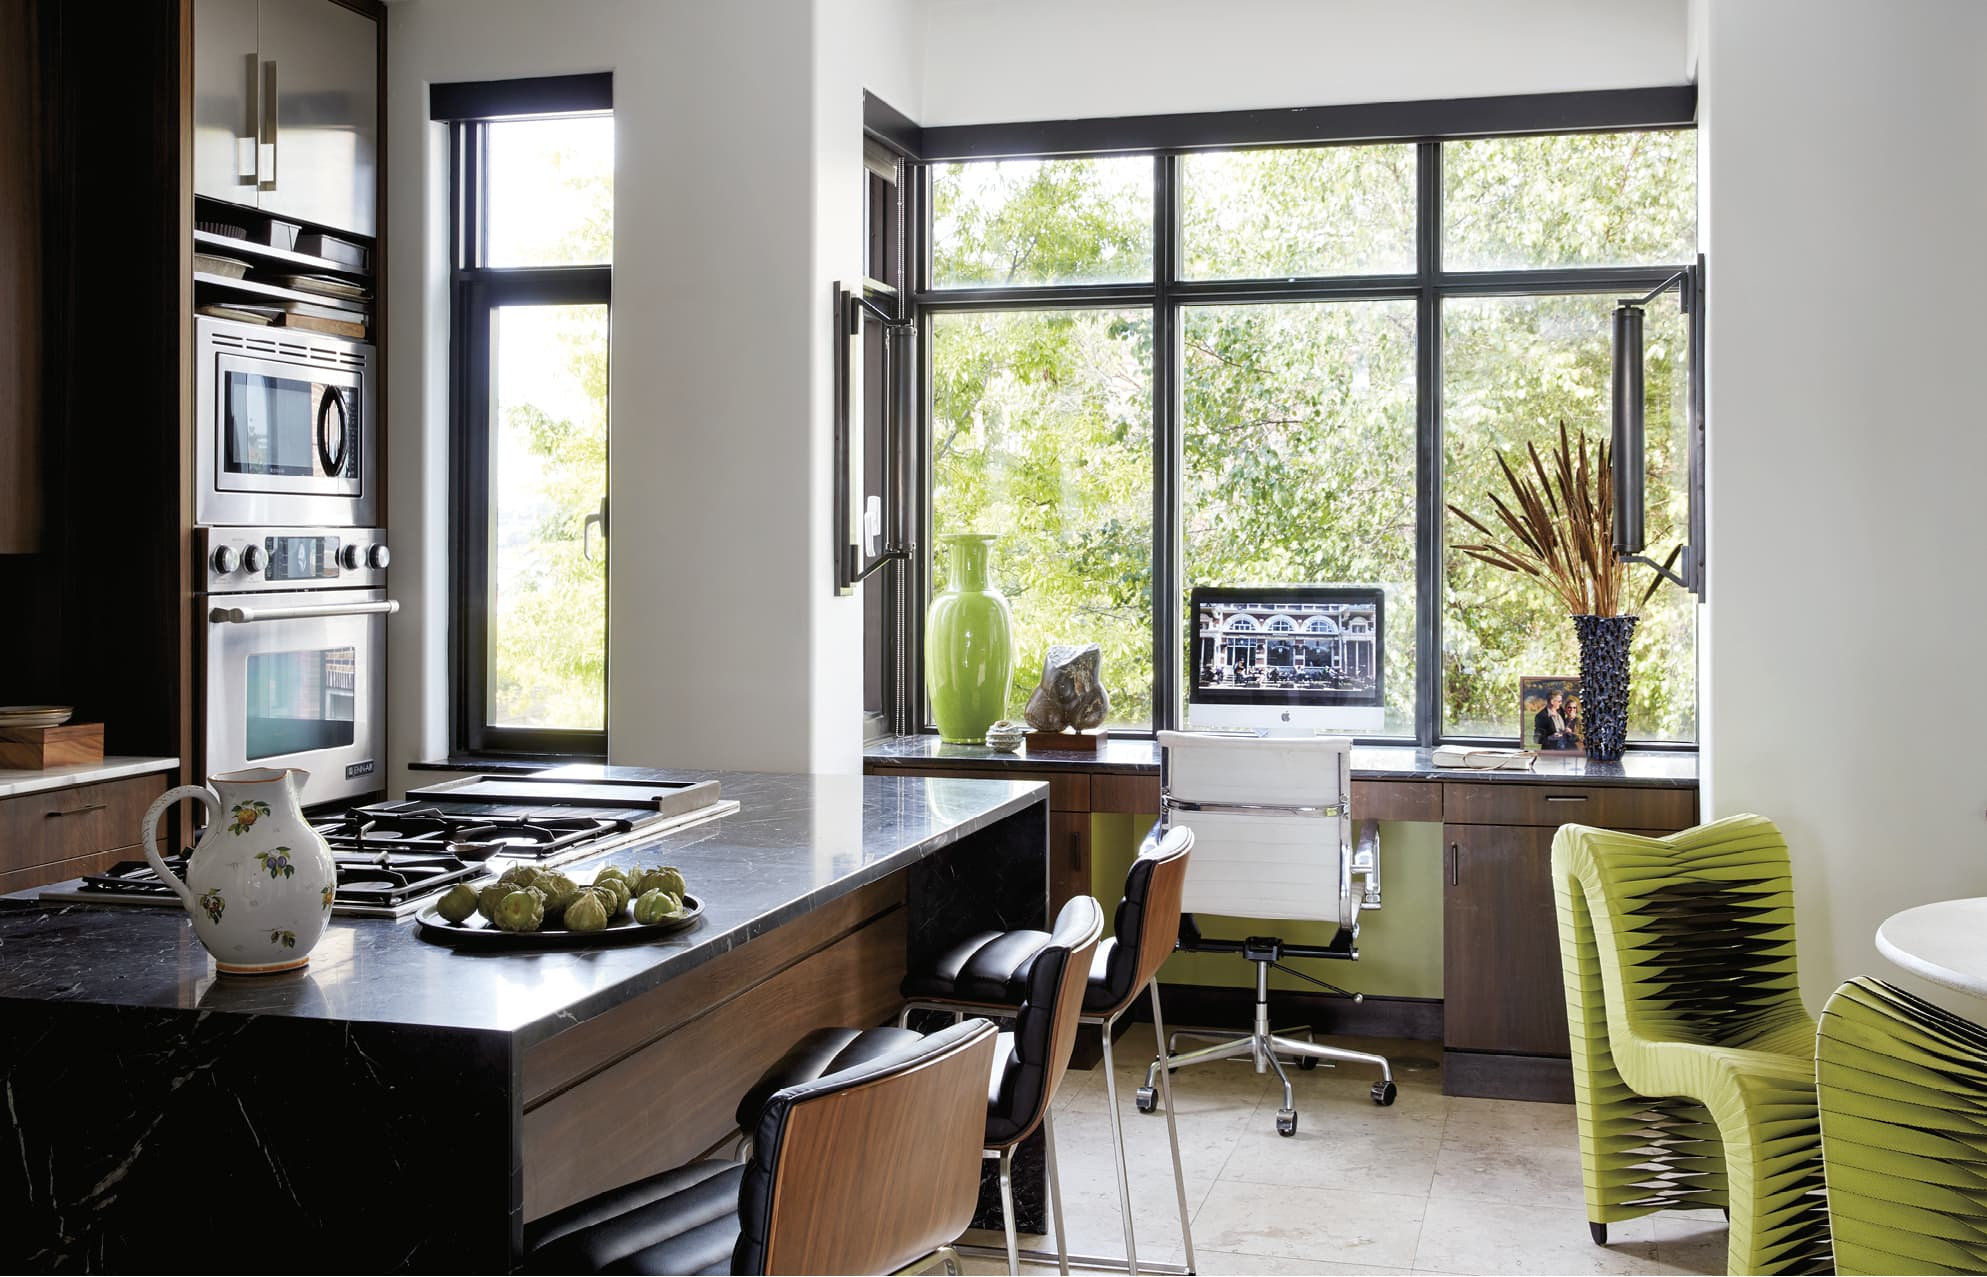 Kitchen with large windows